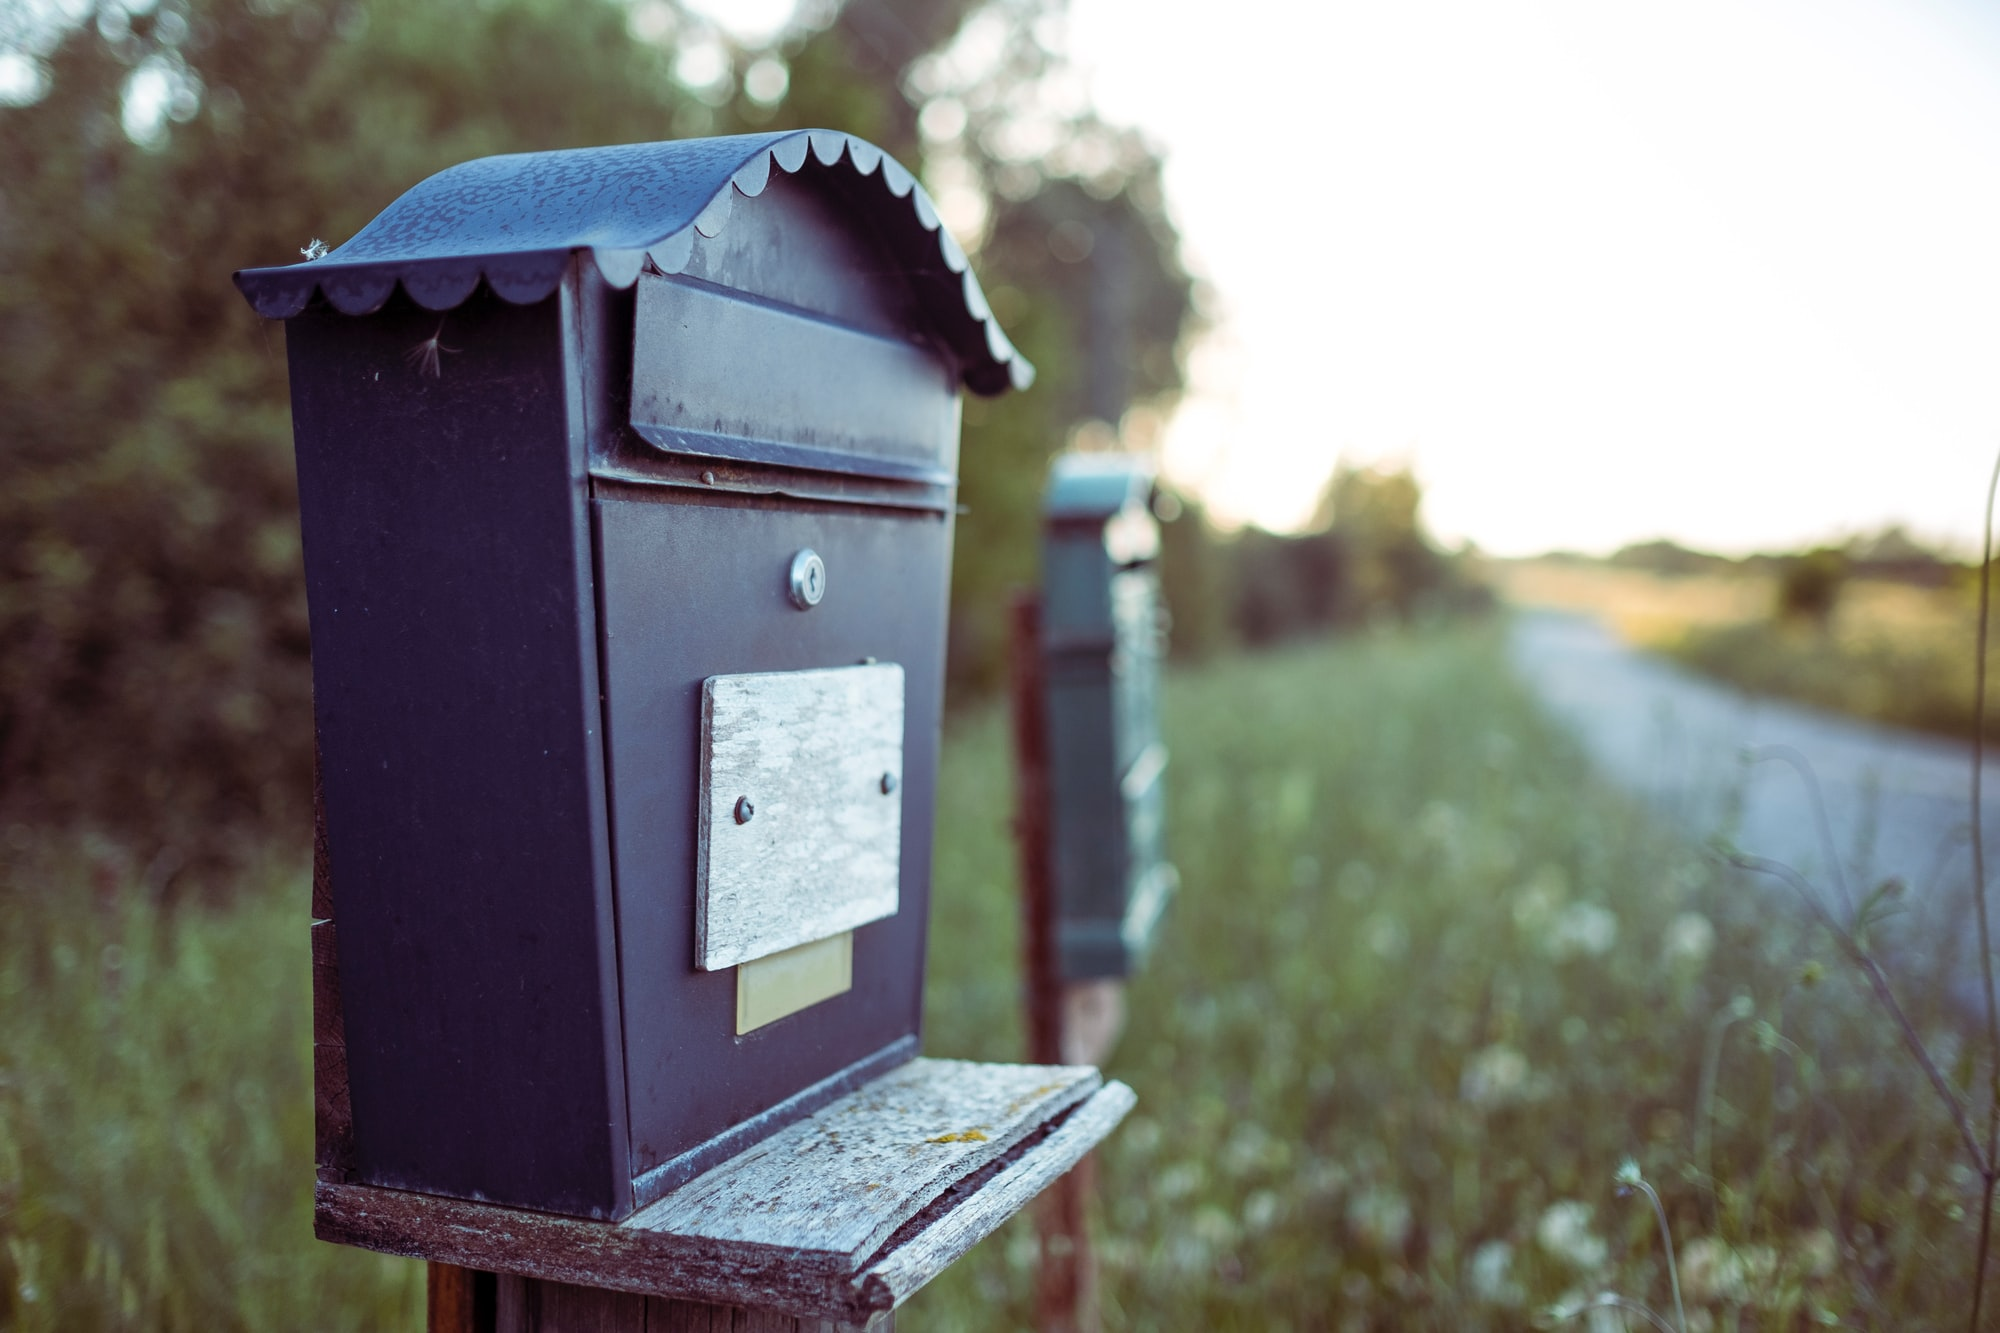 Using Python built-in SMTP server for development and troubleshooting